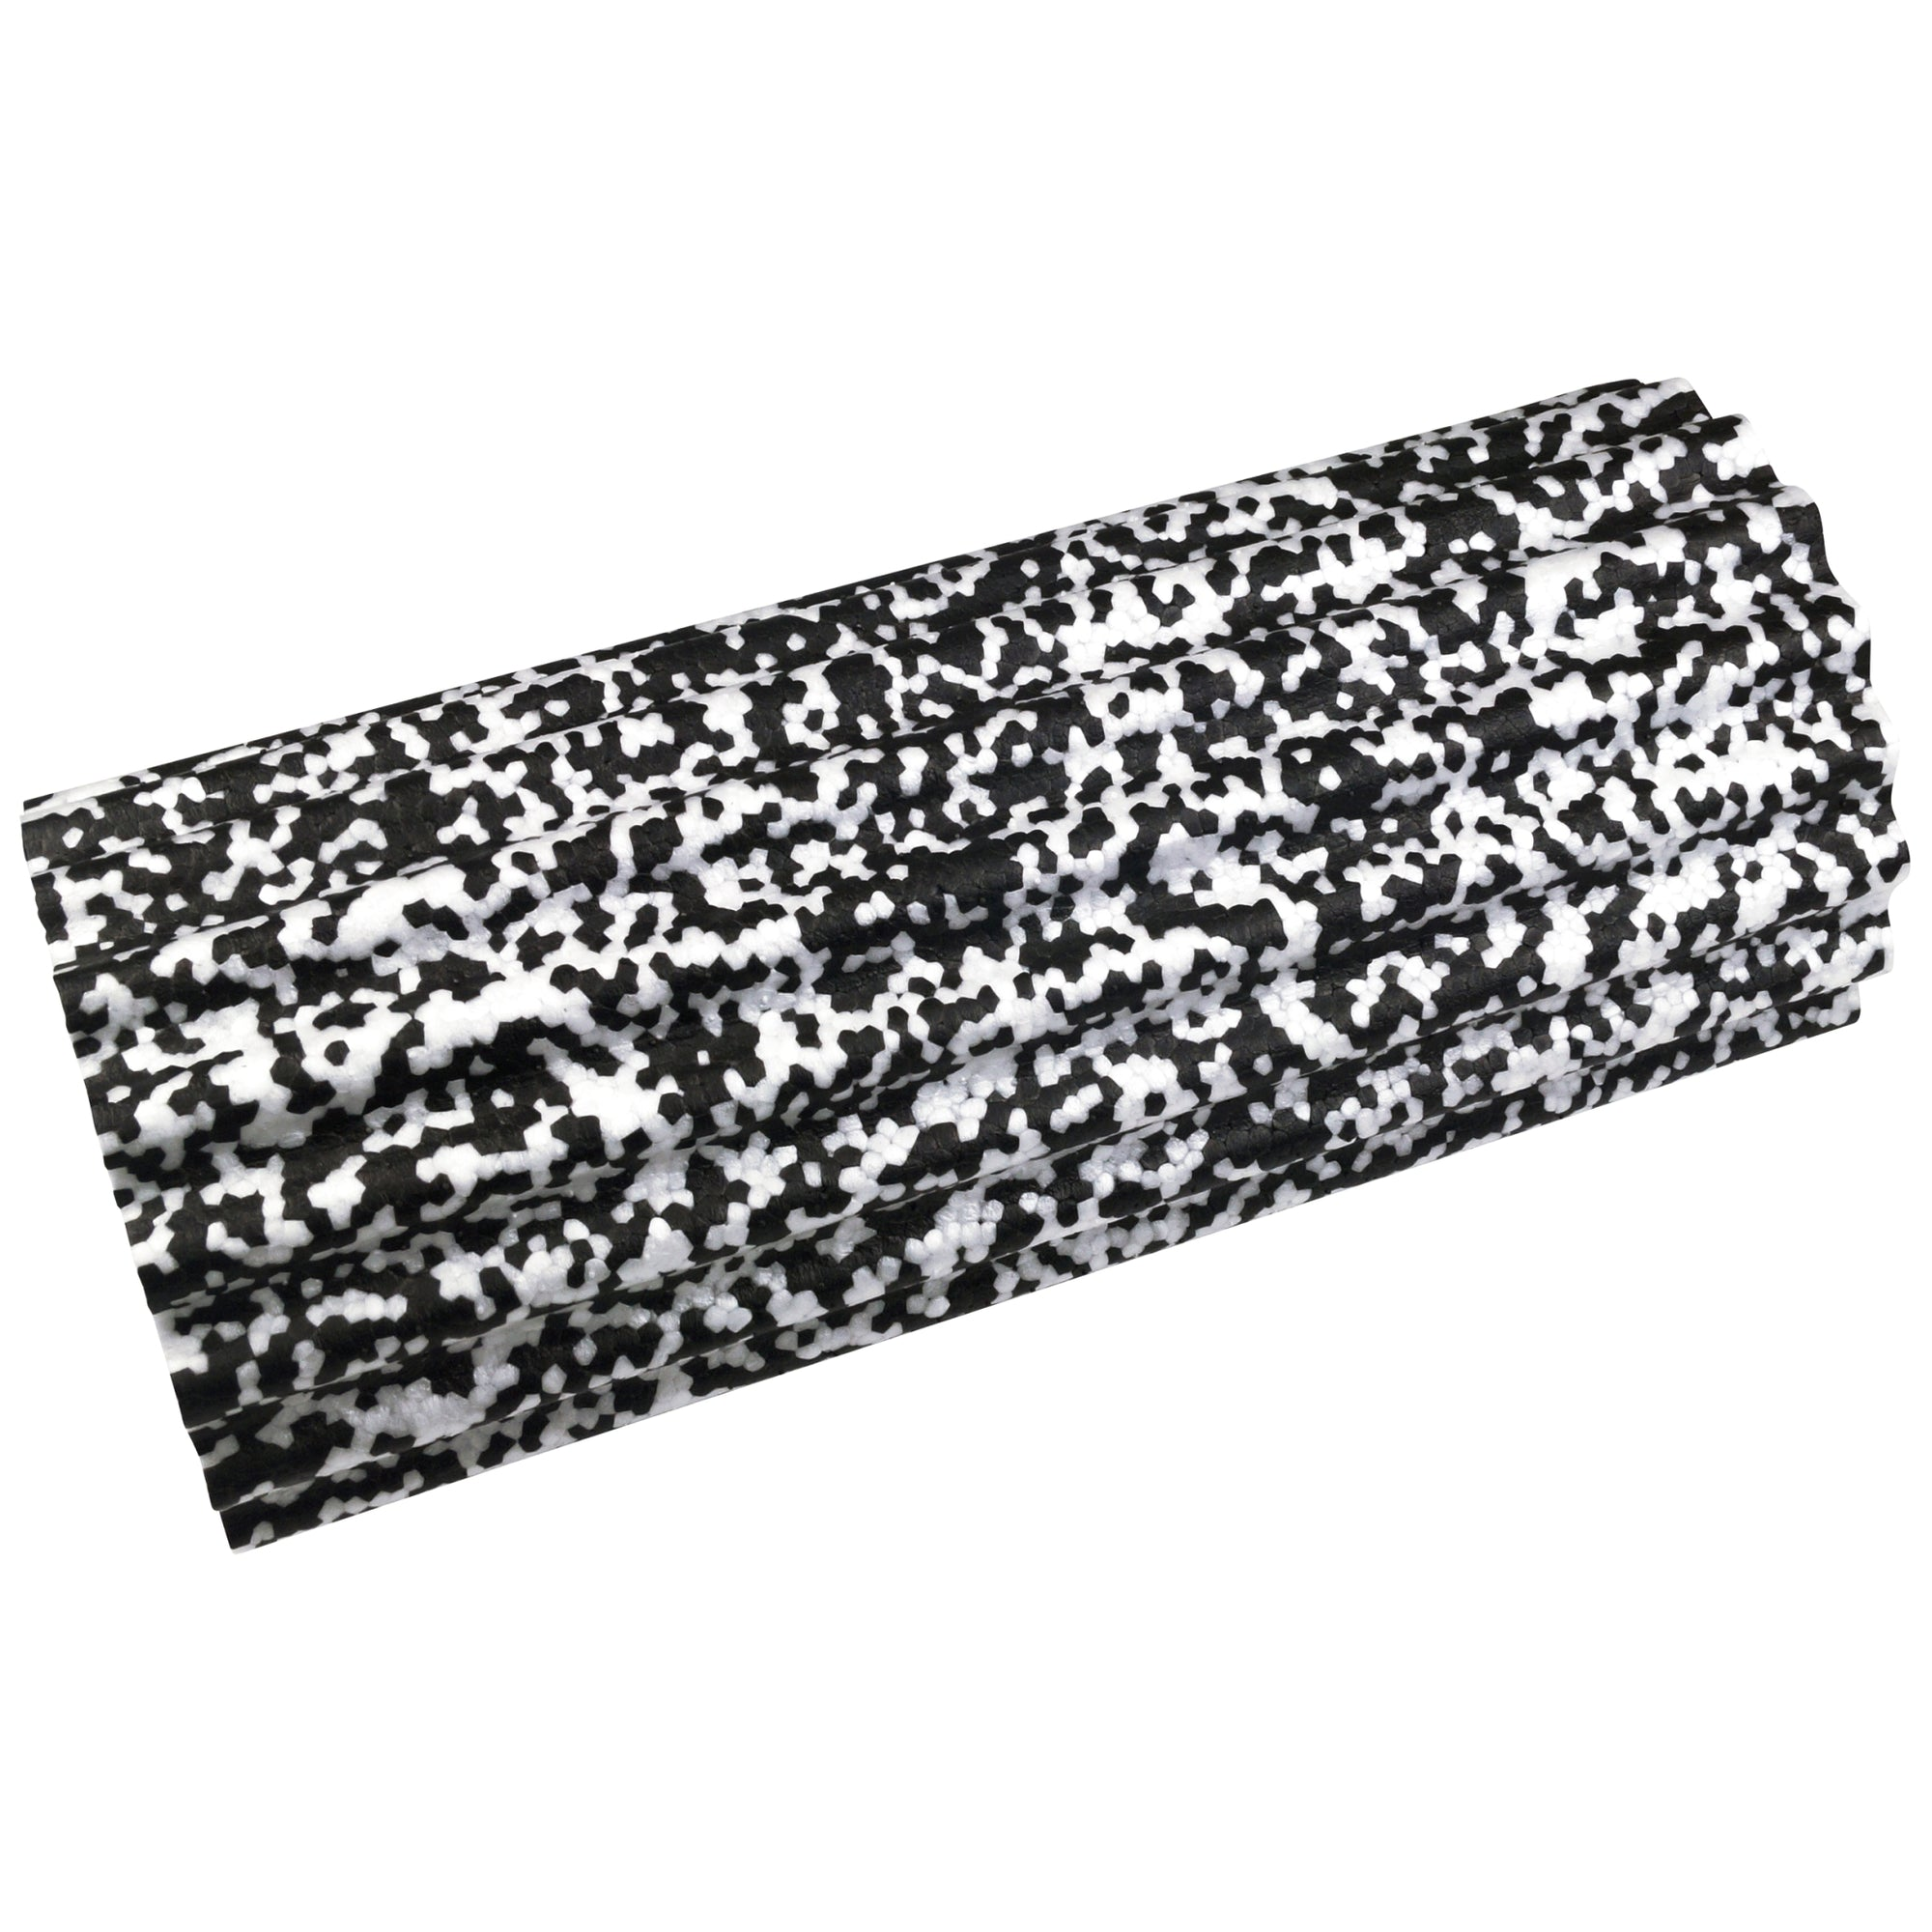 UFE Foam Massage Roller